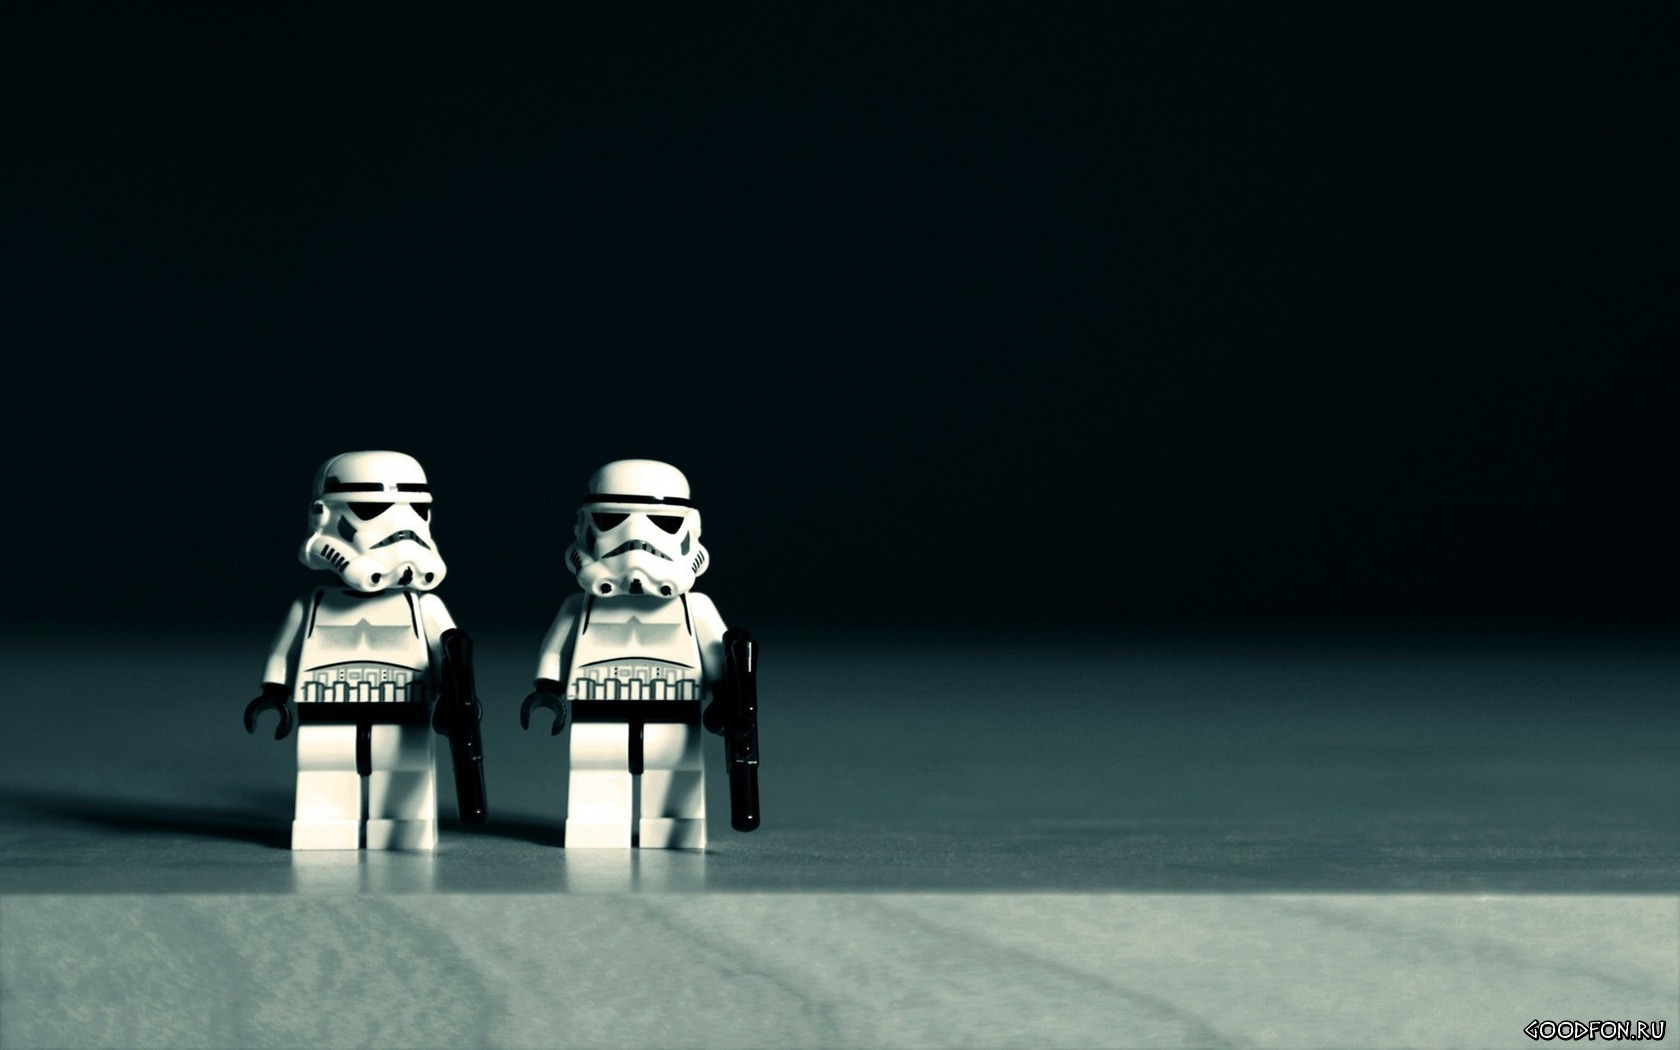 13847 download wallpaper Star Wars, Toys, Objects screensavers and pictures for free